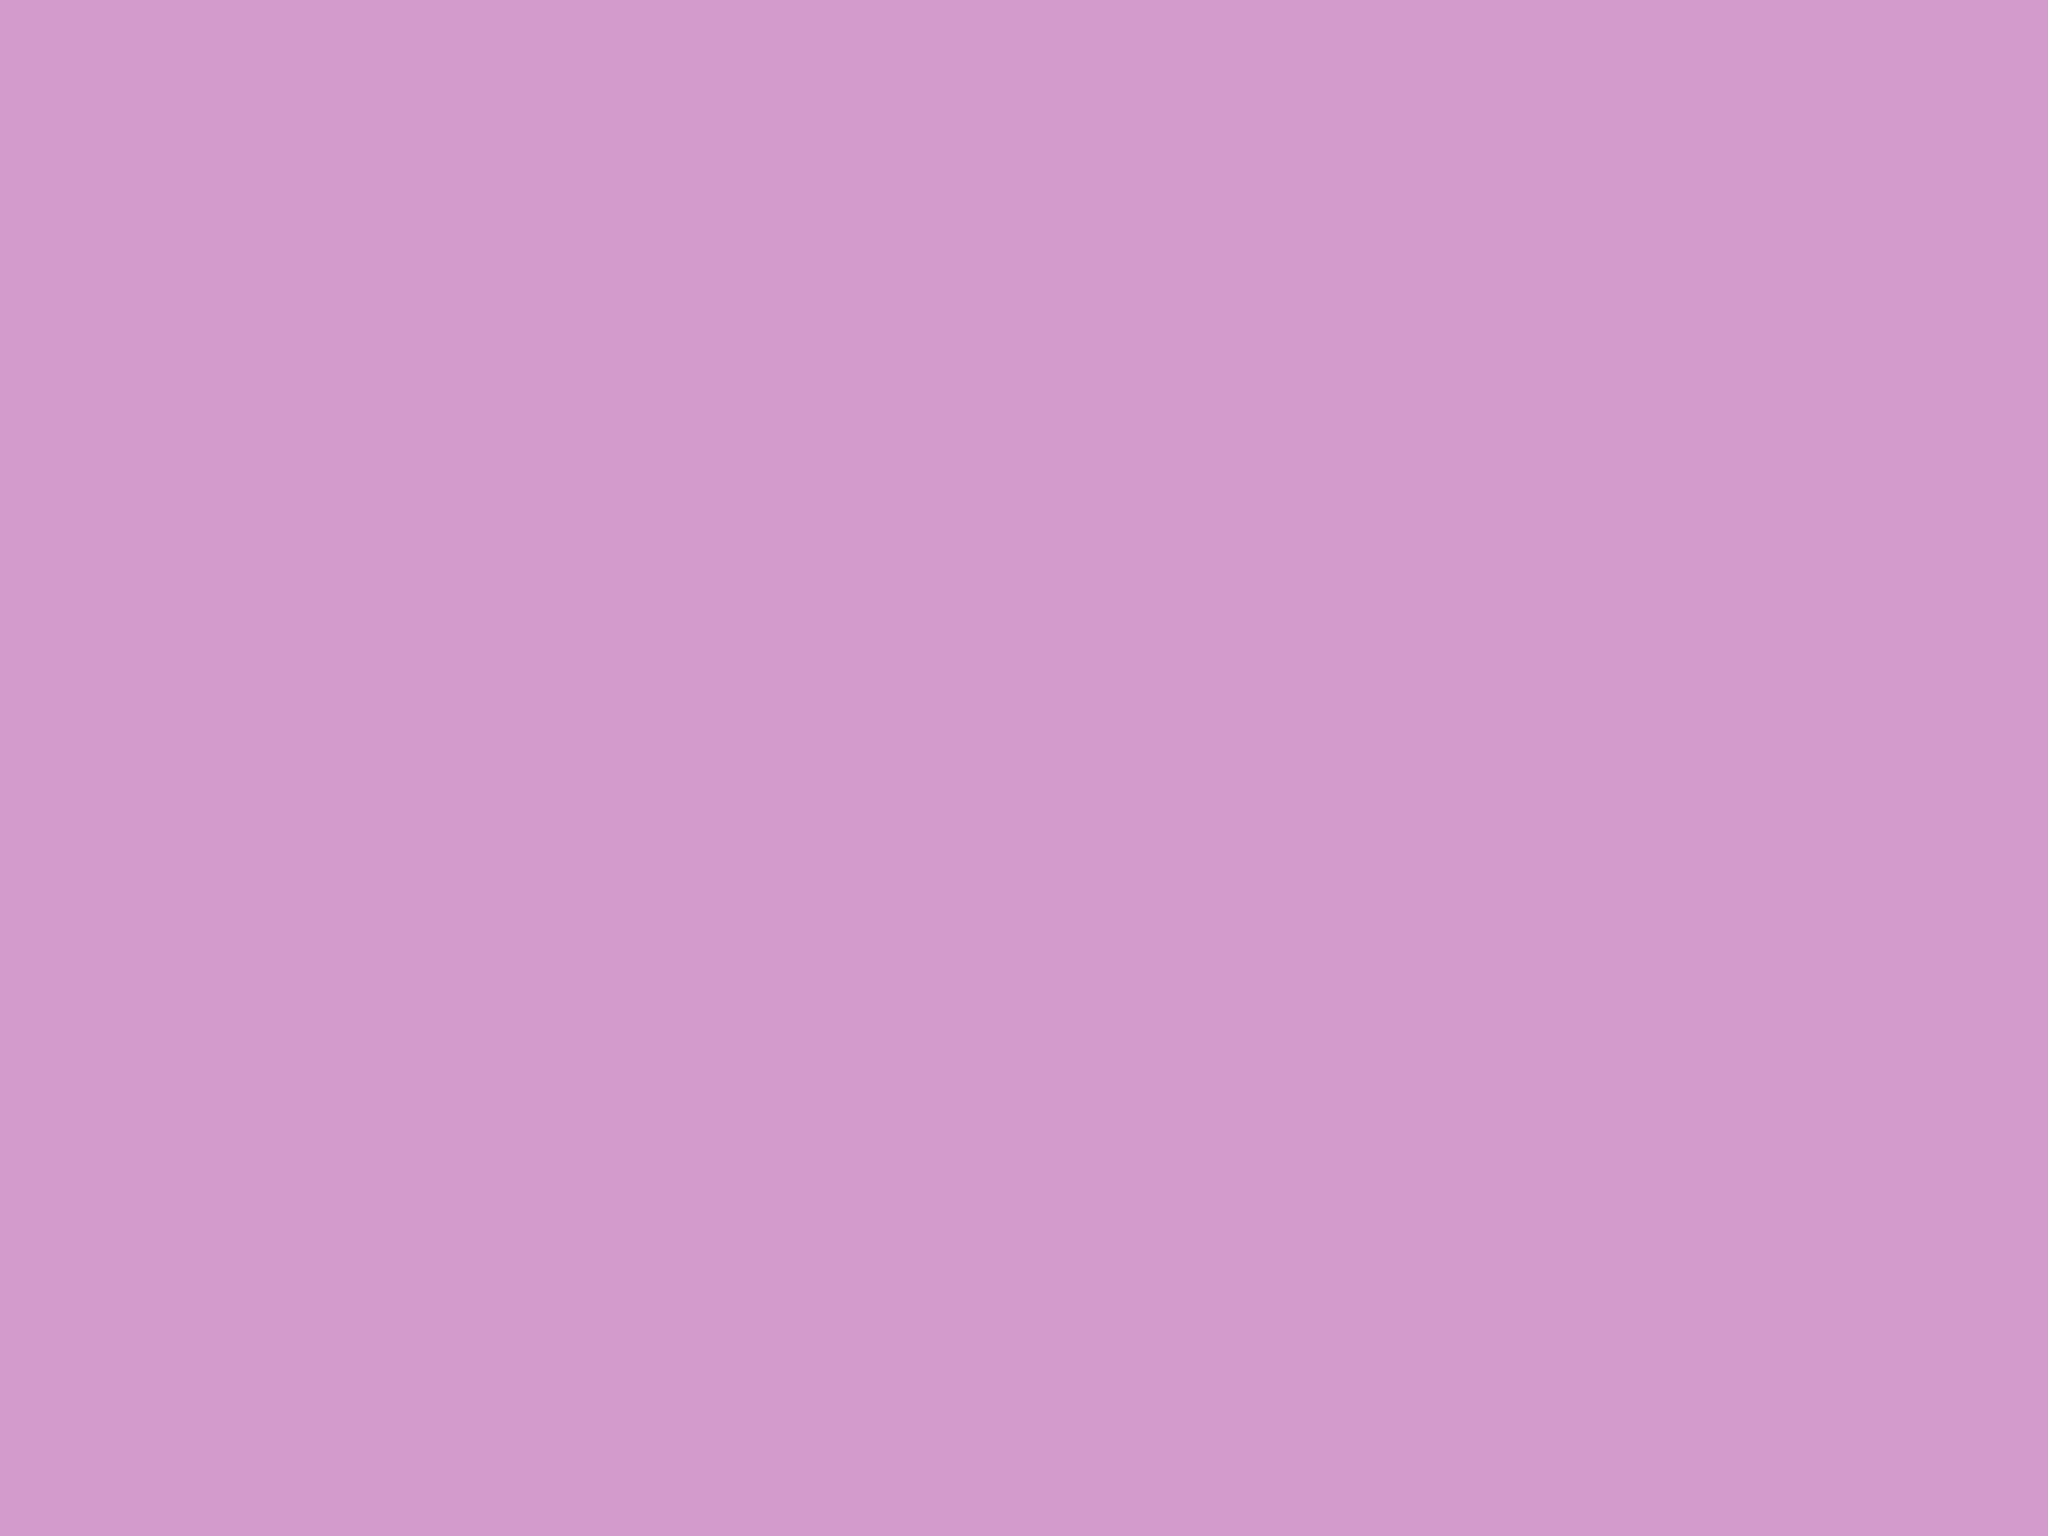 2048x1536 Light Medium Orchid Solid Color Background